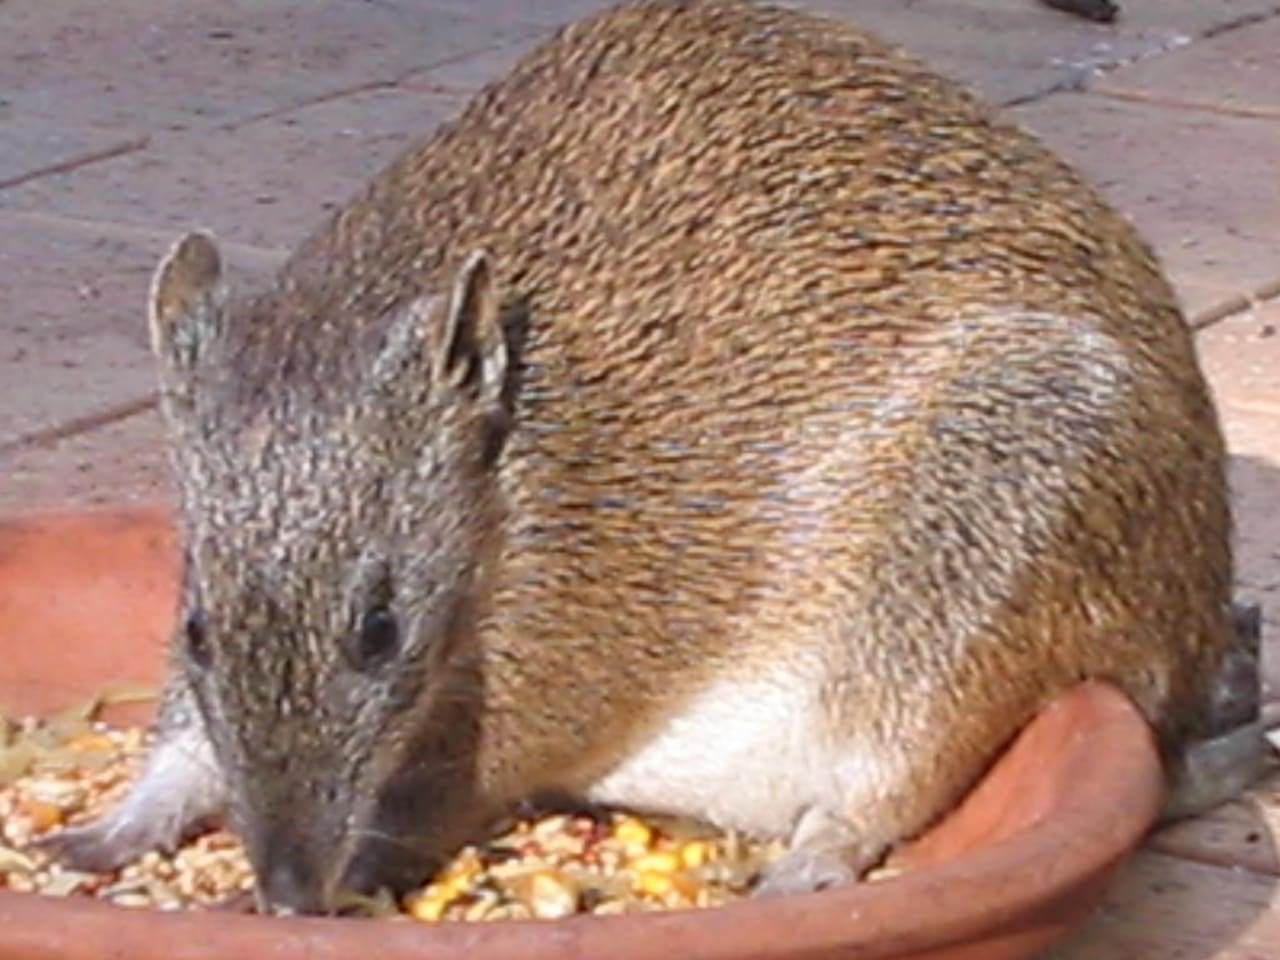 Bandicoots forage and feed in the garden. They are tame and friendly and will even feed from your hands.